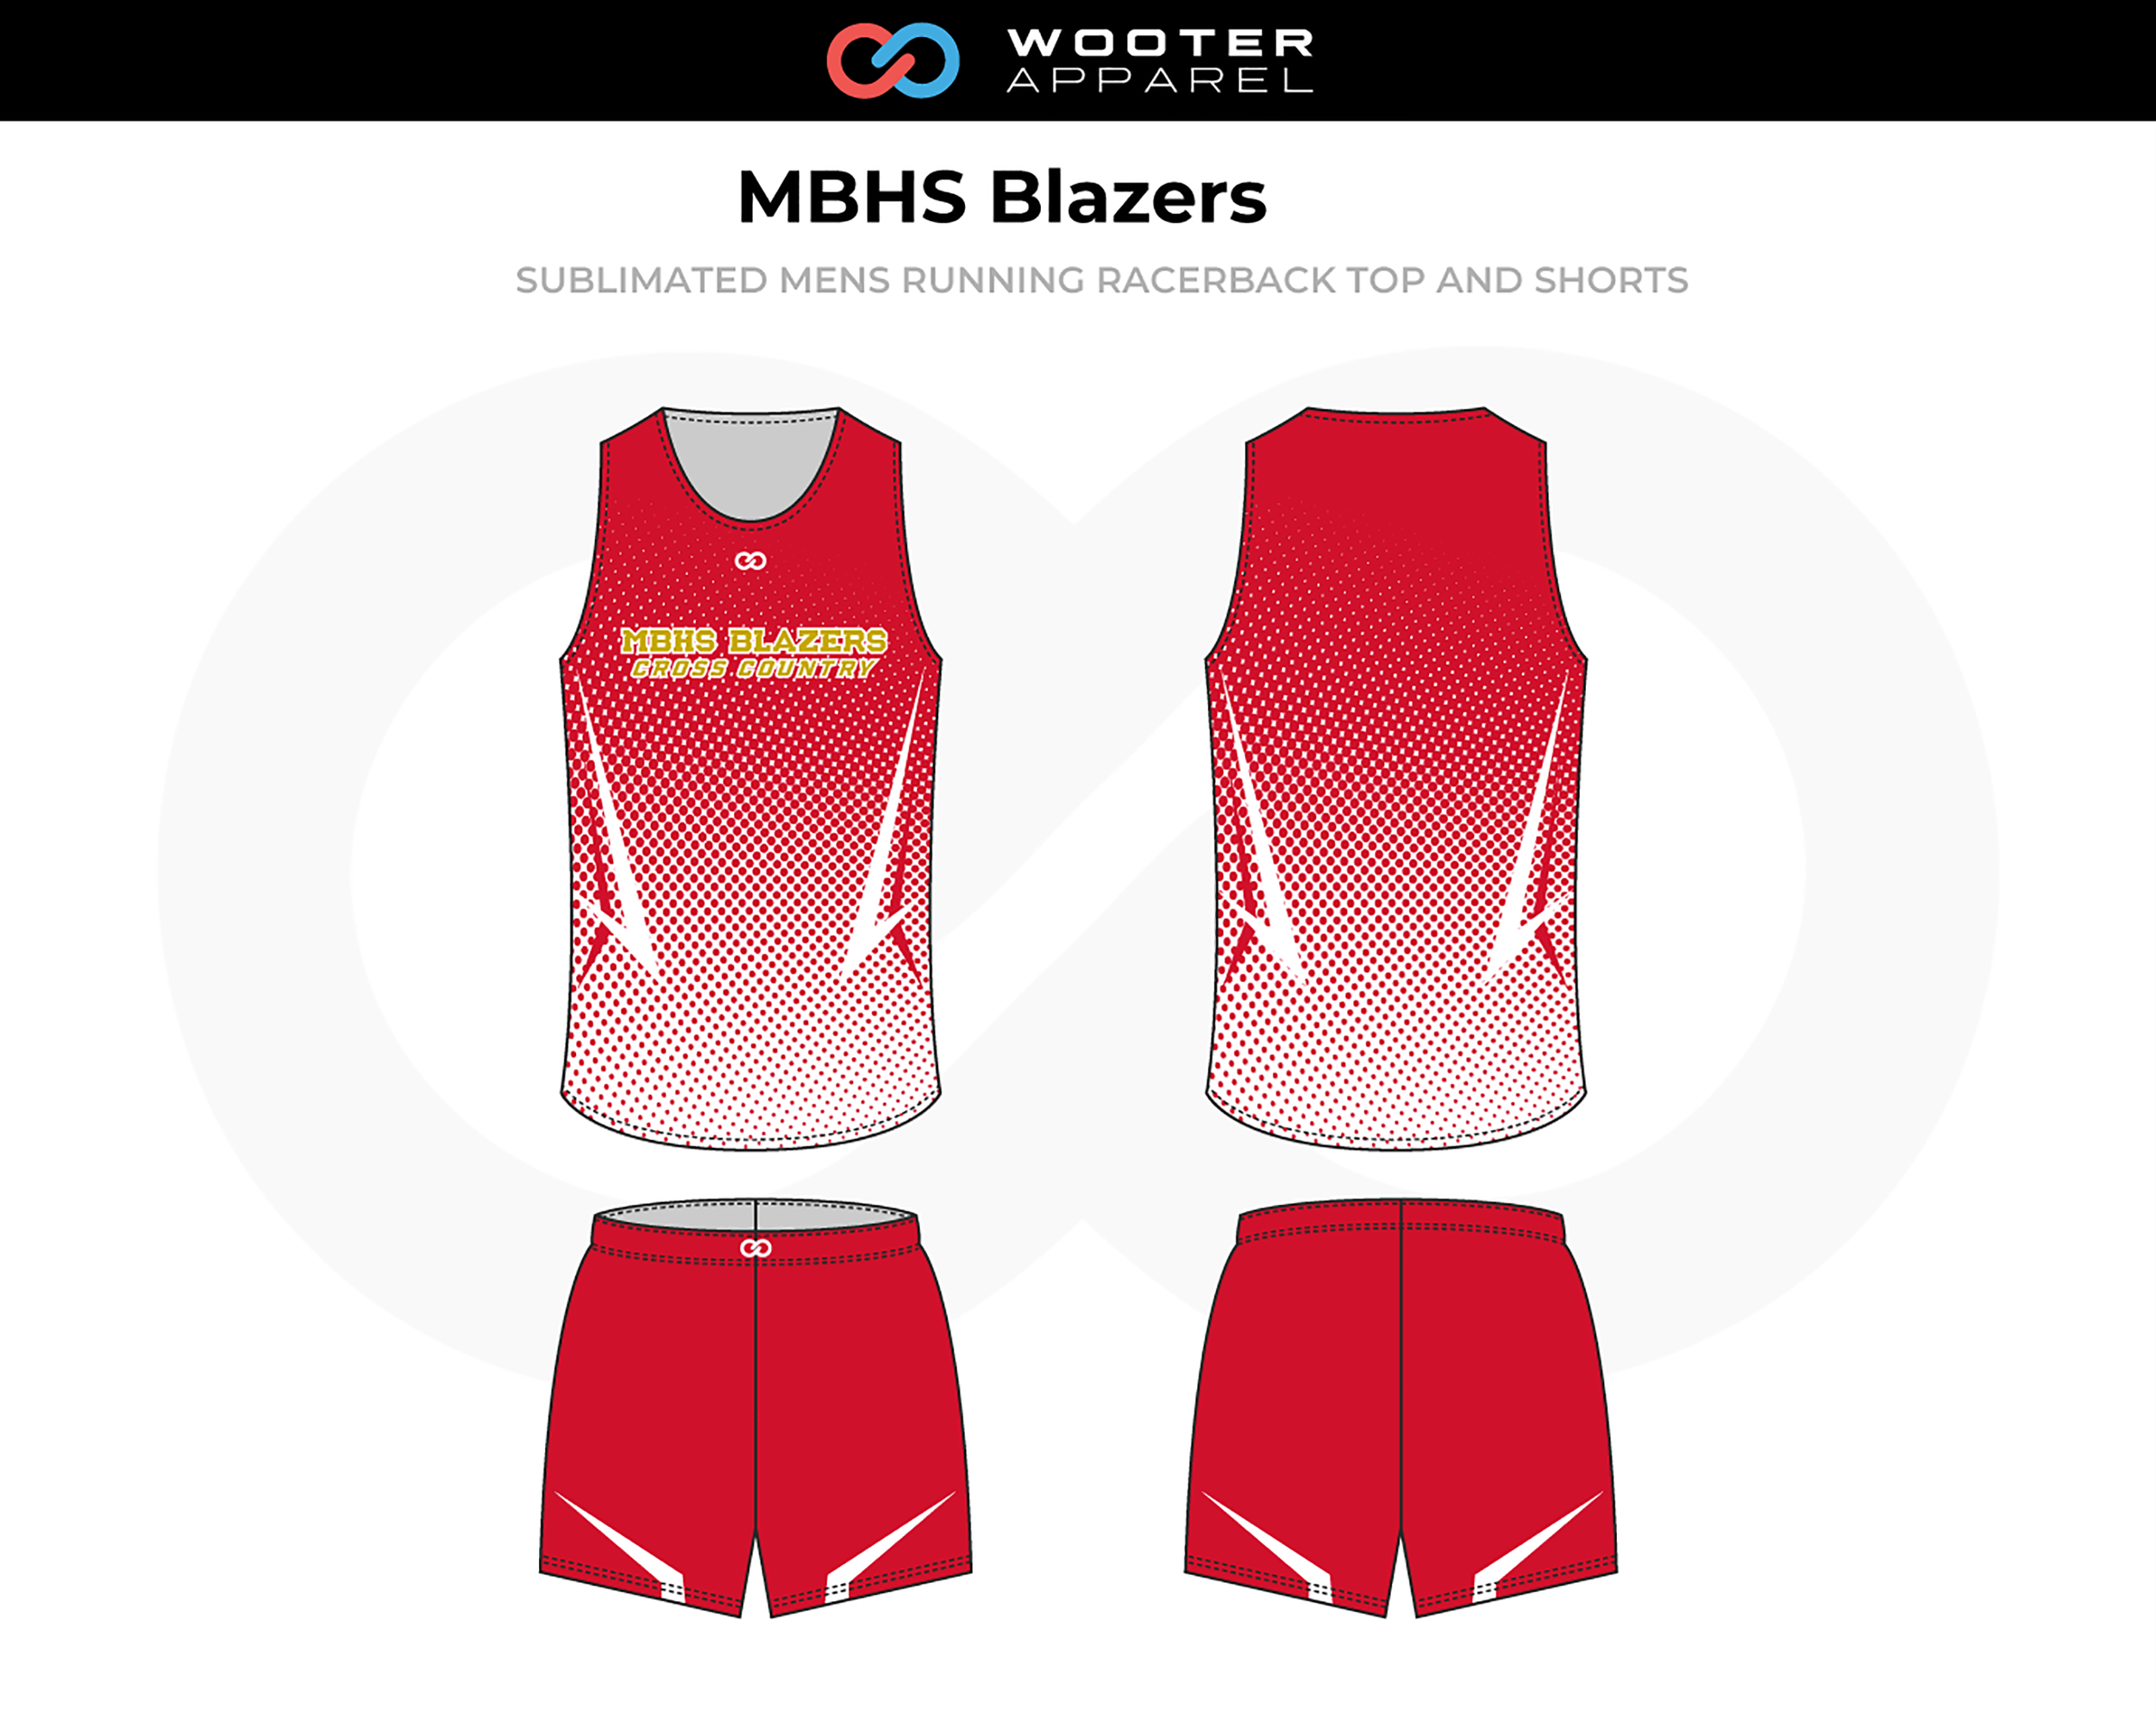 MBHS BLAZERS Red White Men's Track Uniforms, Racerback Jerseys, and Shorts